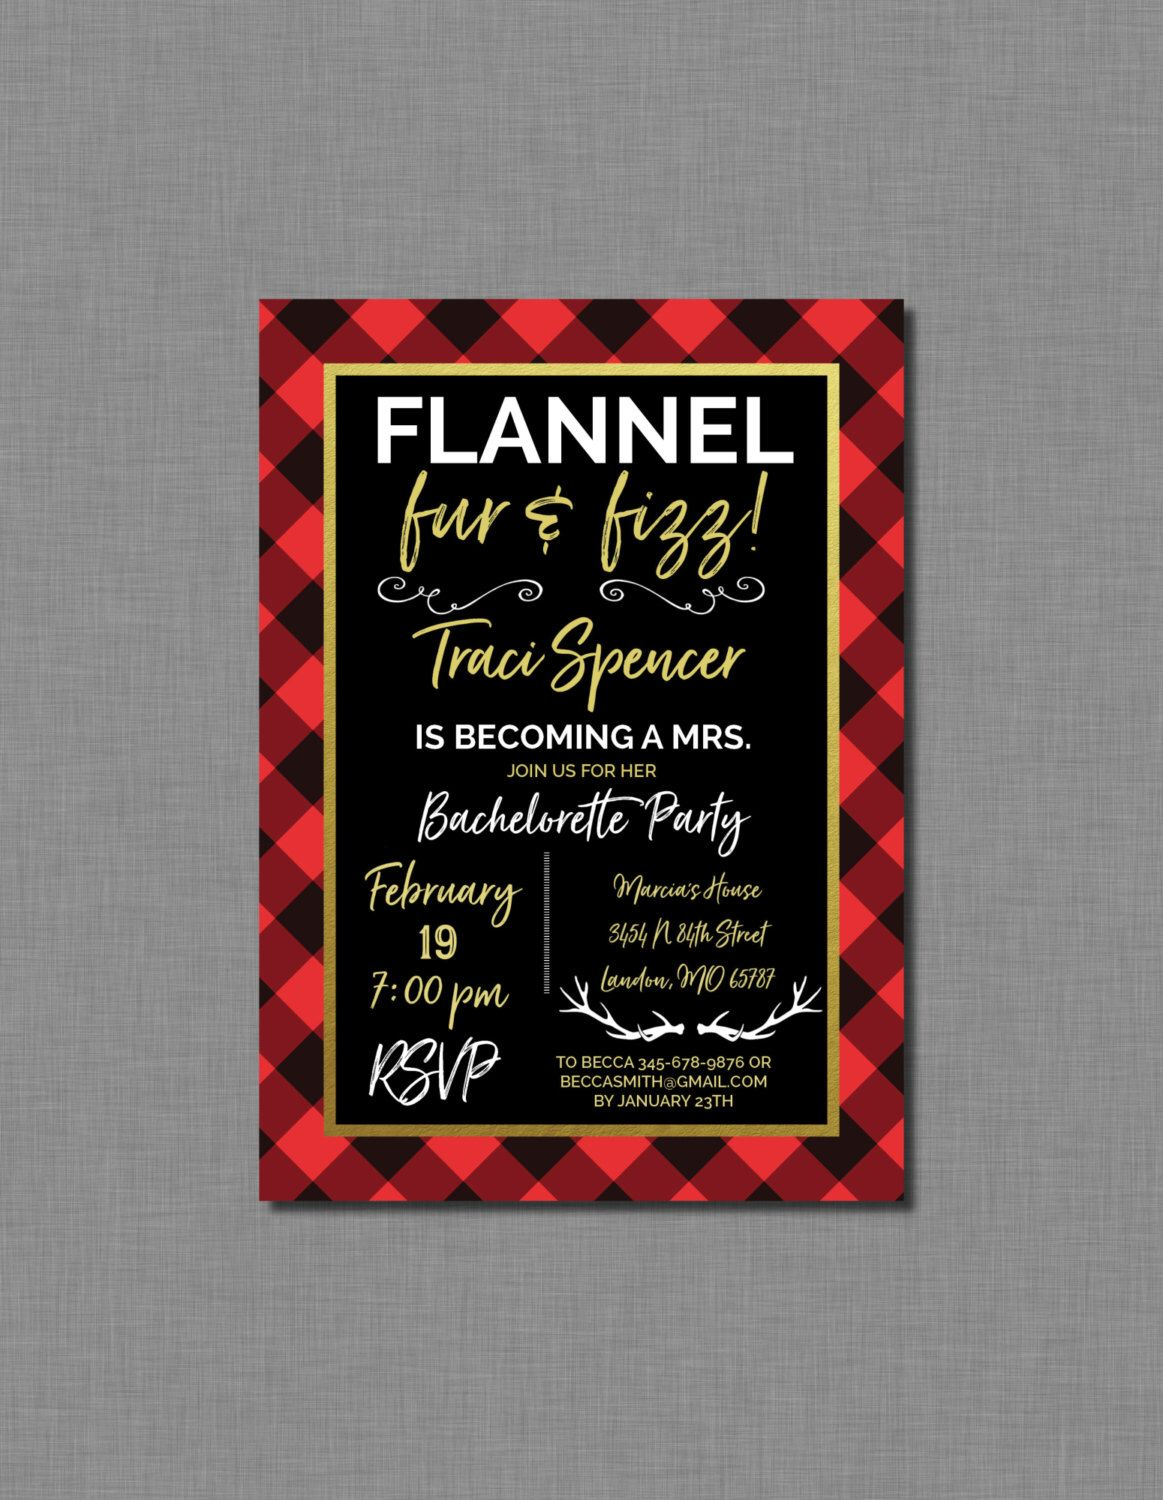 Bachelorette Party Invitation Flannel Fur and Fizz Digital or ...